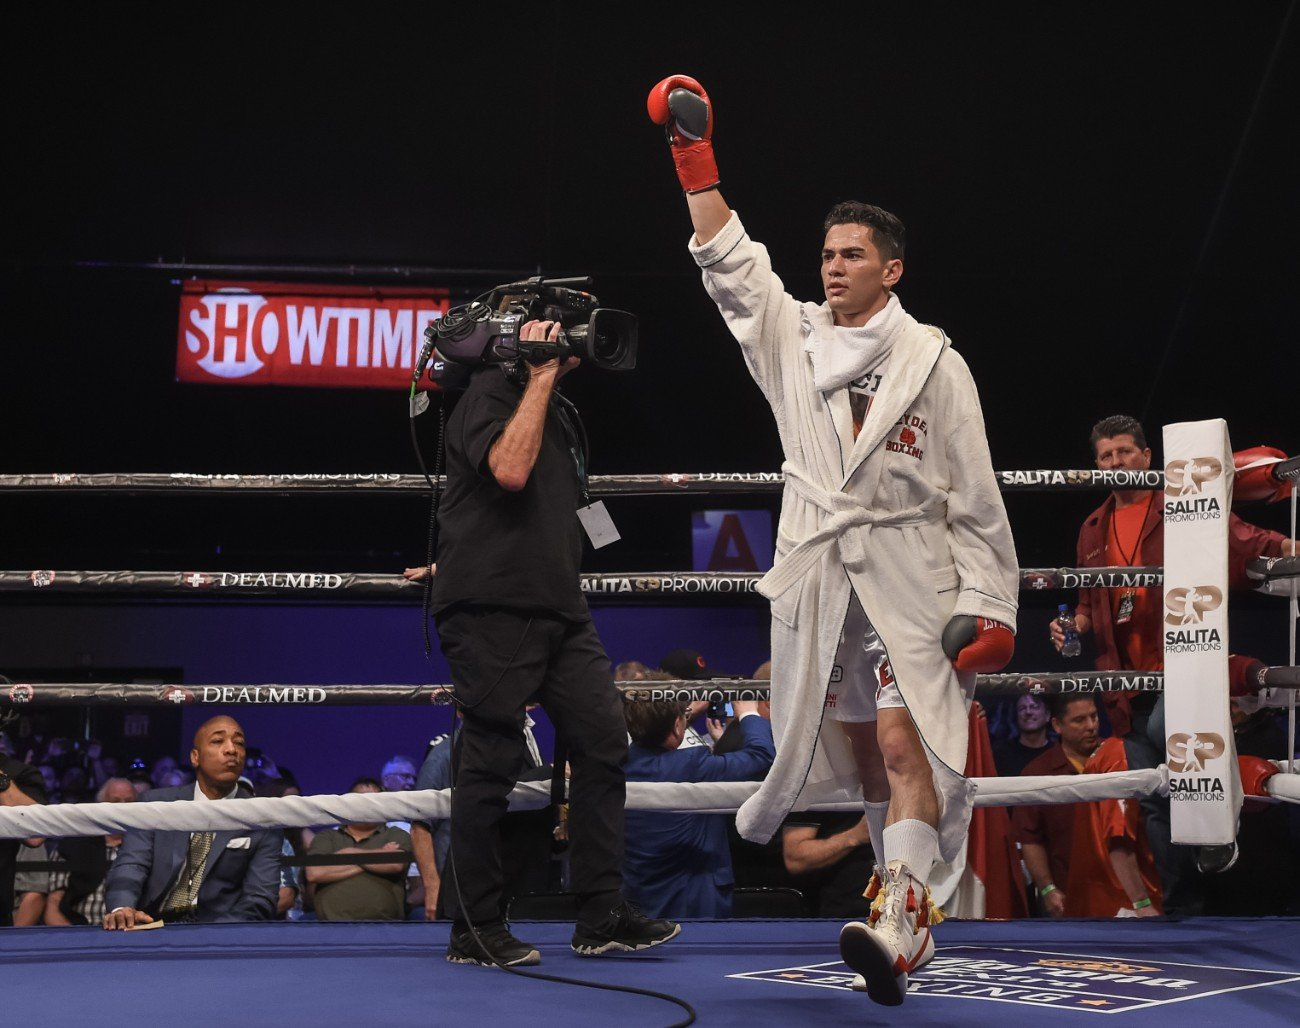 Giovanni Cabrera Mioletti - Chicago's Giovanni Cabrera Mioletti will look to remain undefeated when he returns to the ring on Saturday at the Wintrust Arena.